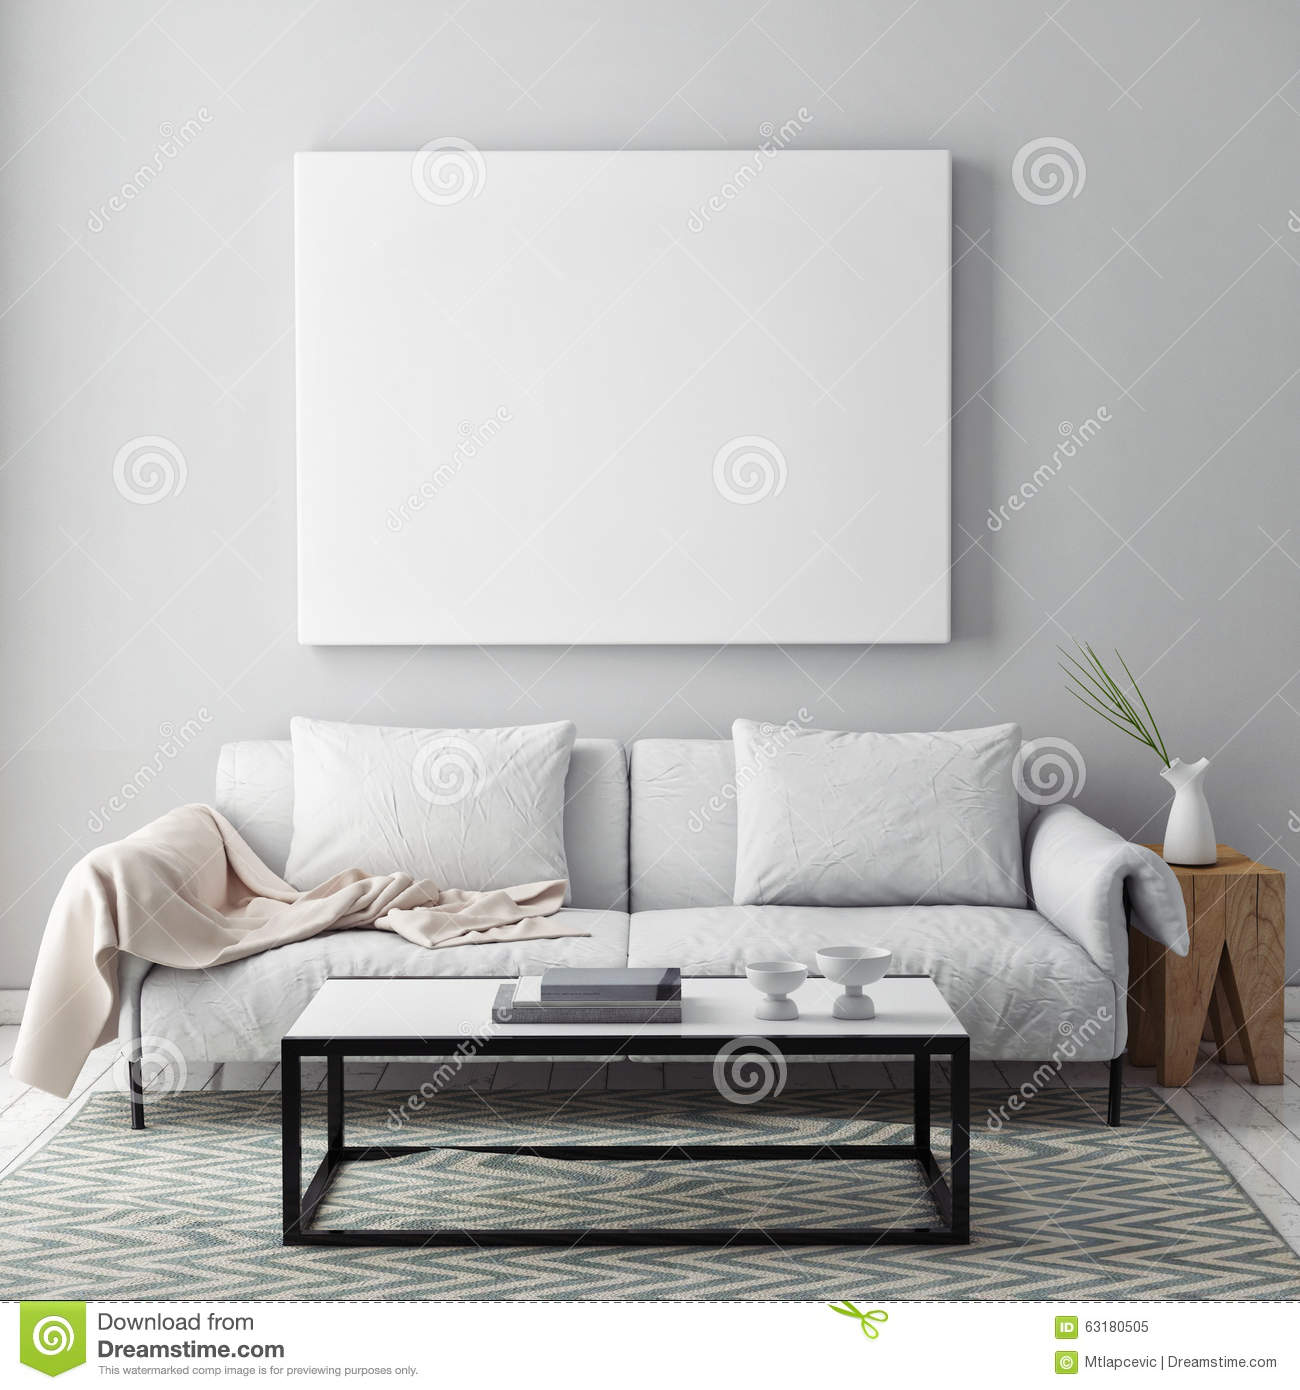 Mock Up Blank Poster On The Wall Of Livingroom Stock Image - Image ...